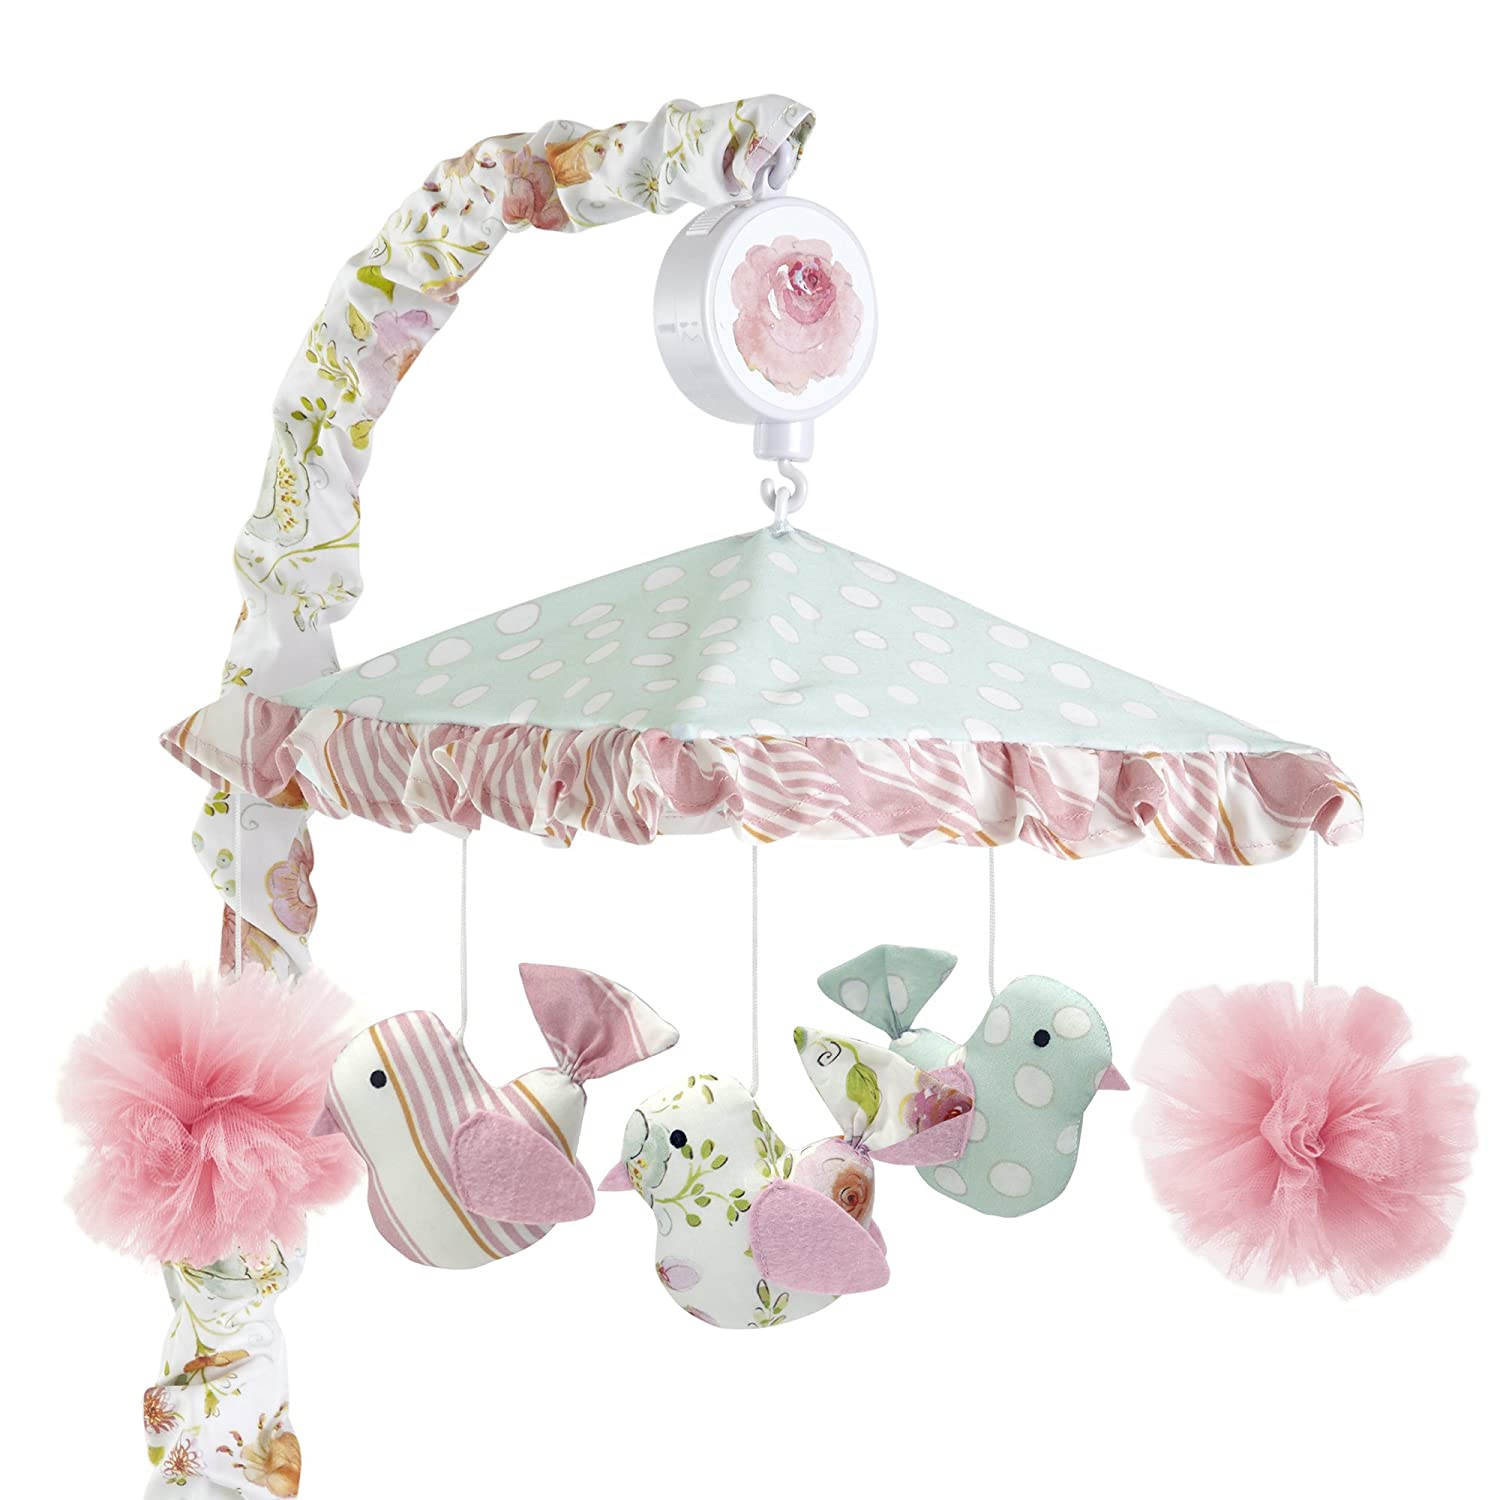 Happi by Dena Sweet Spring Floral Birds Musical Mobile, Pink/Blue Lambs & Ivy 683018